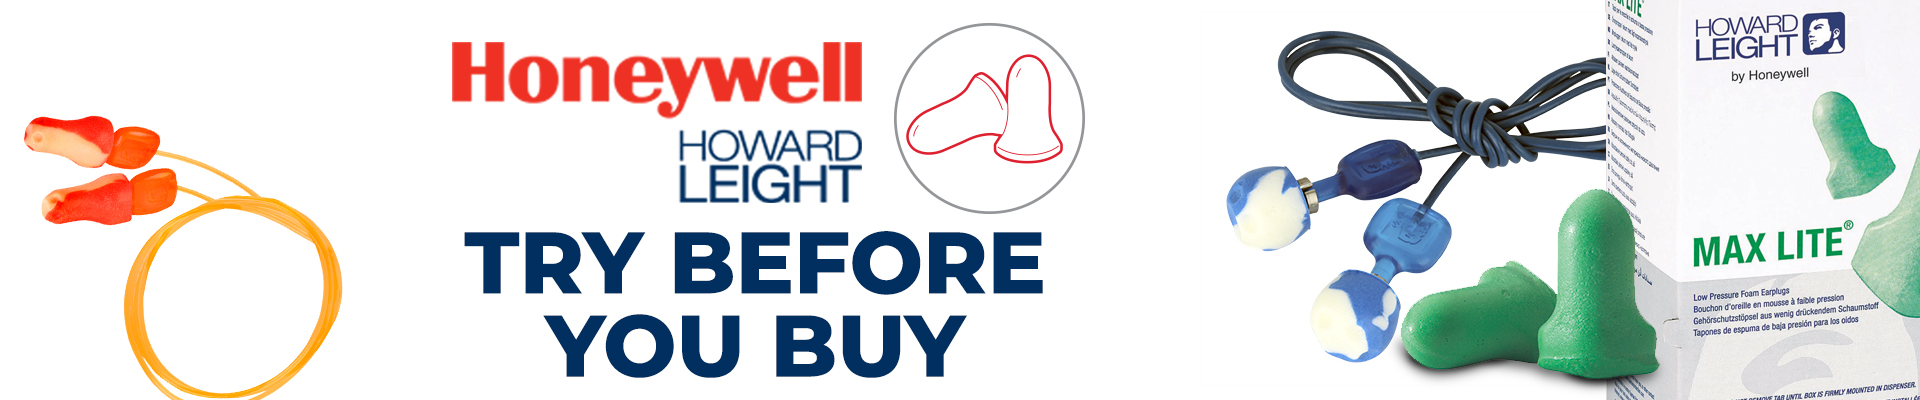 Honeywell Howard Leight try before you buy ear plug event